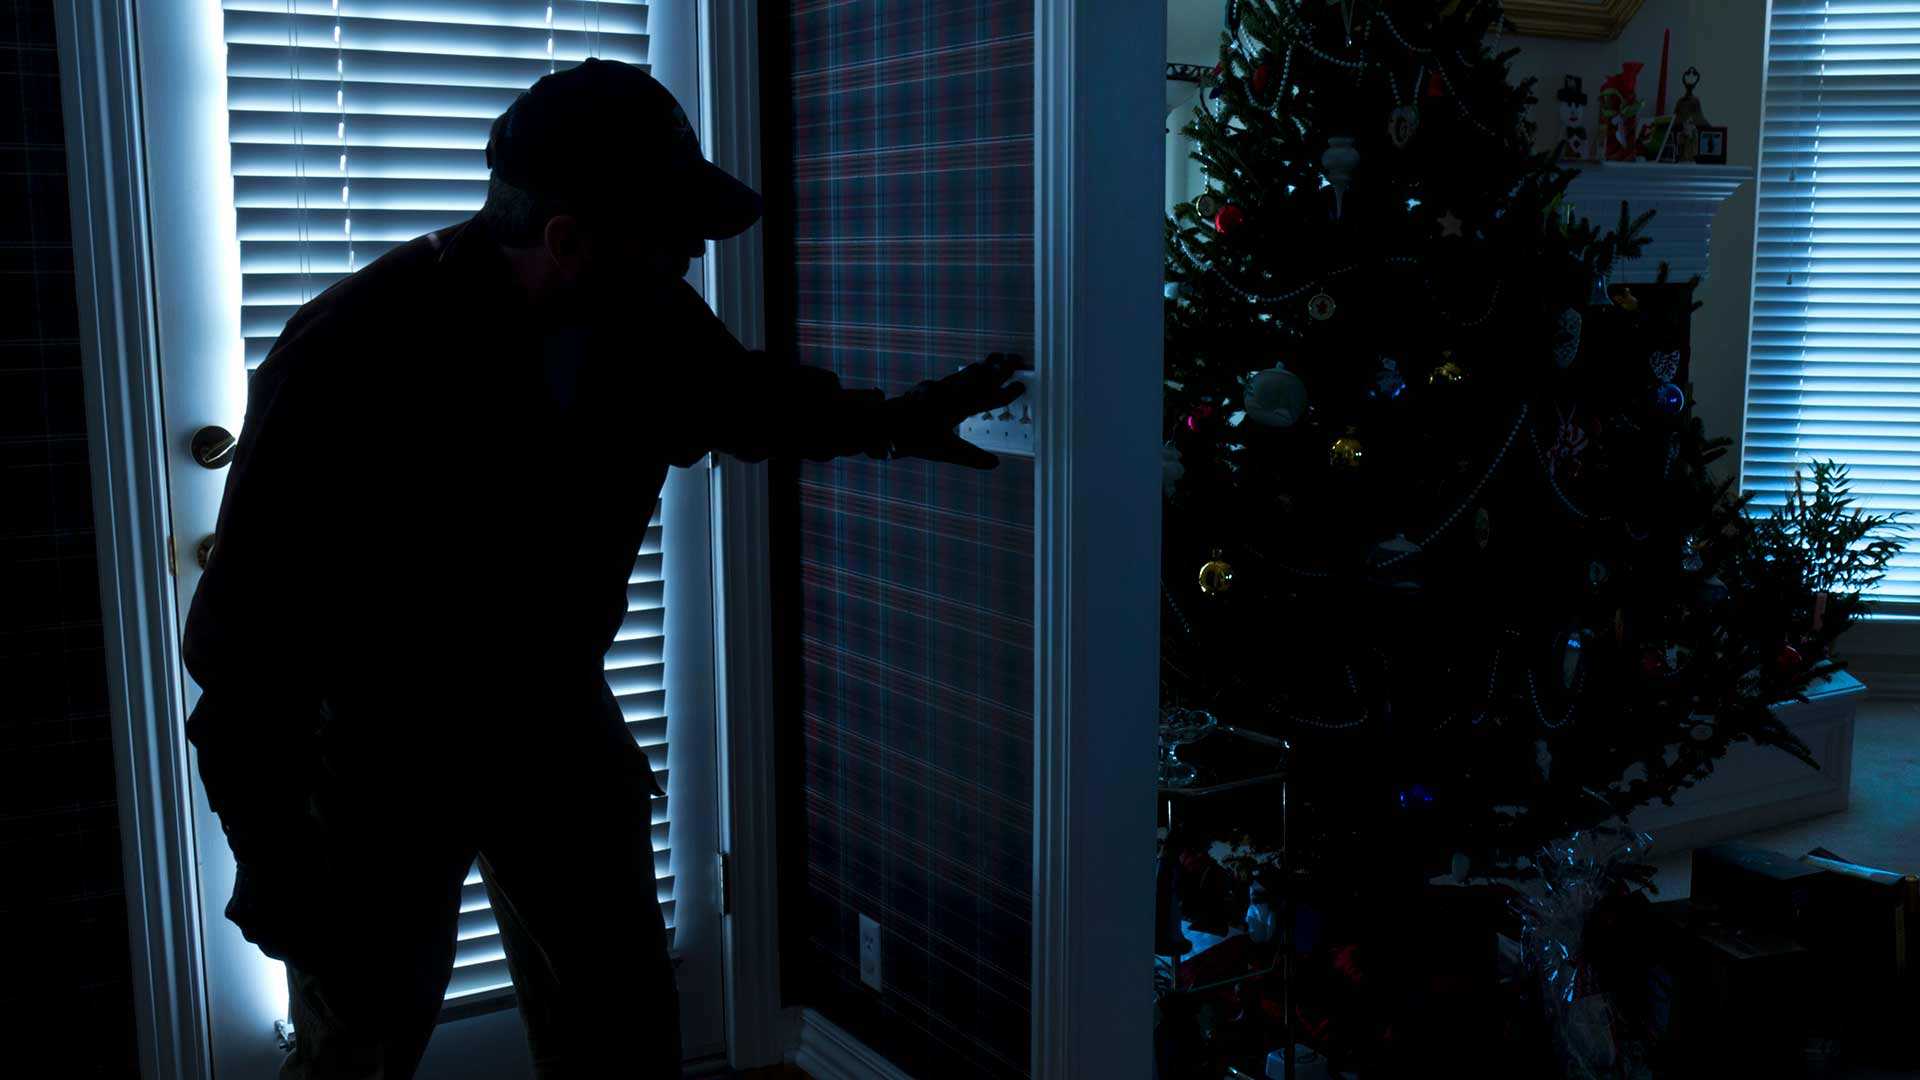 Burglar entering a dark home with the lights off and Christmas tree in view.